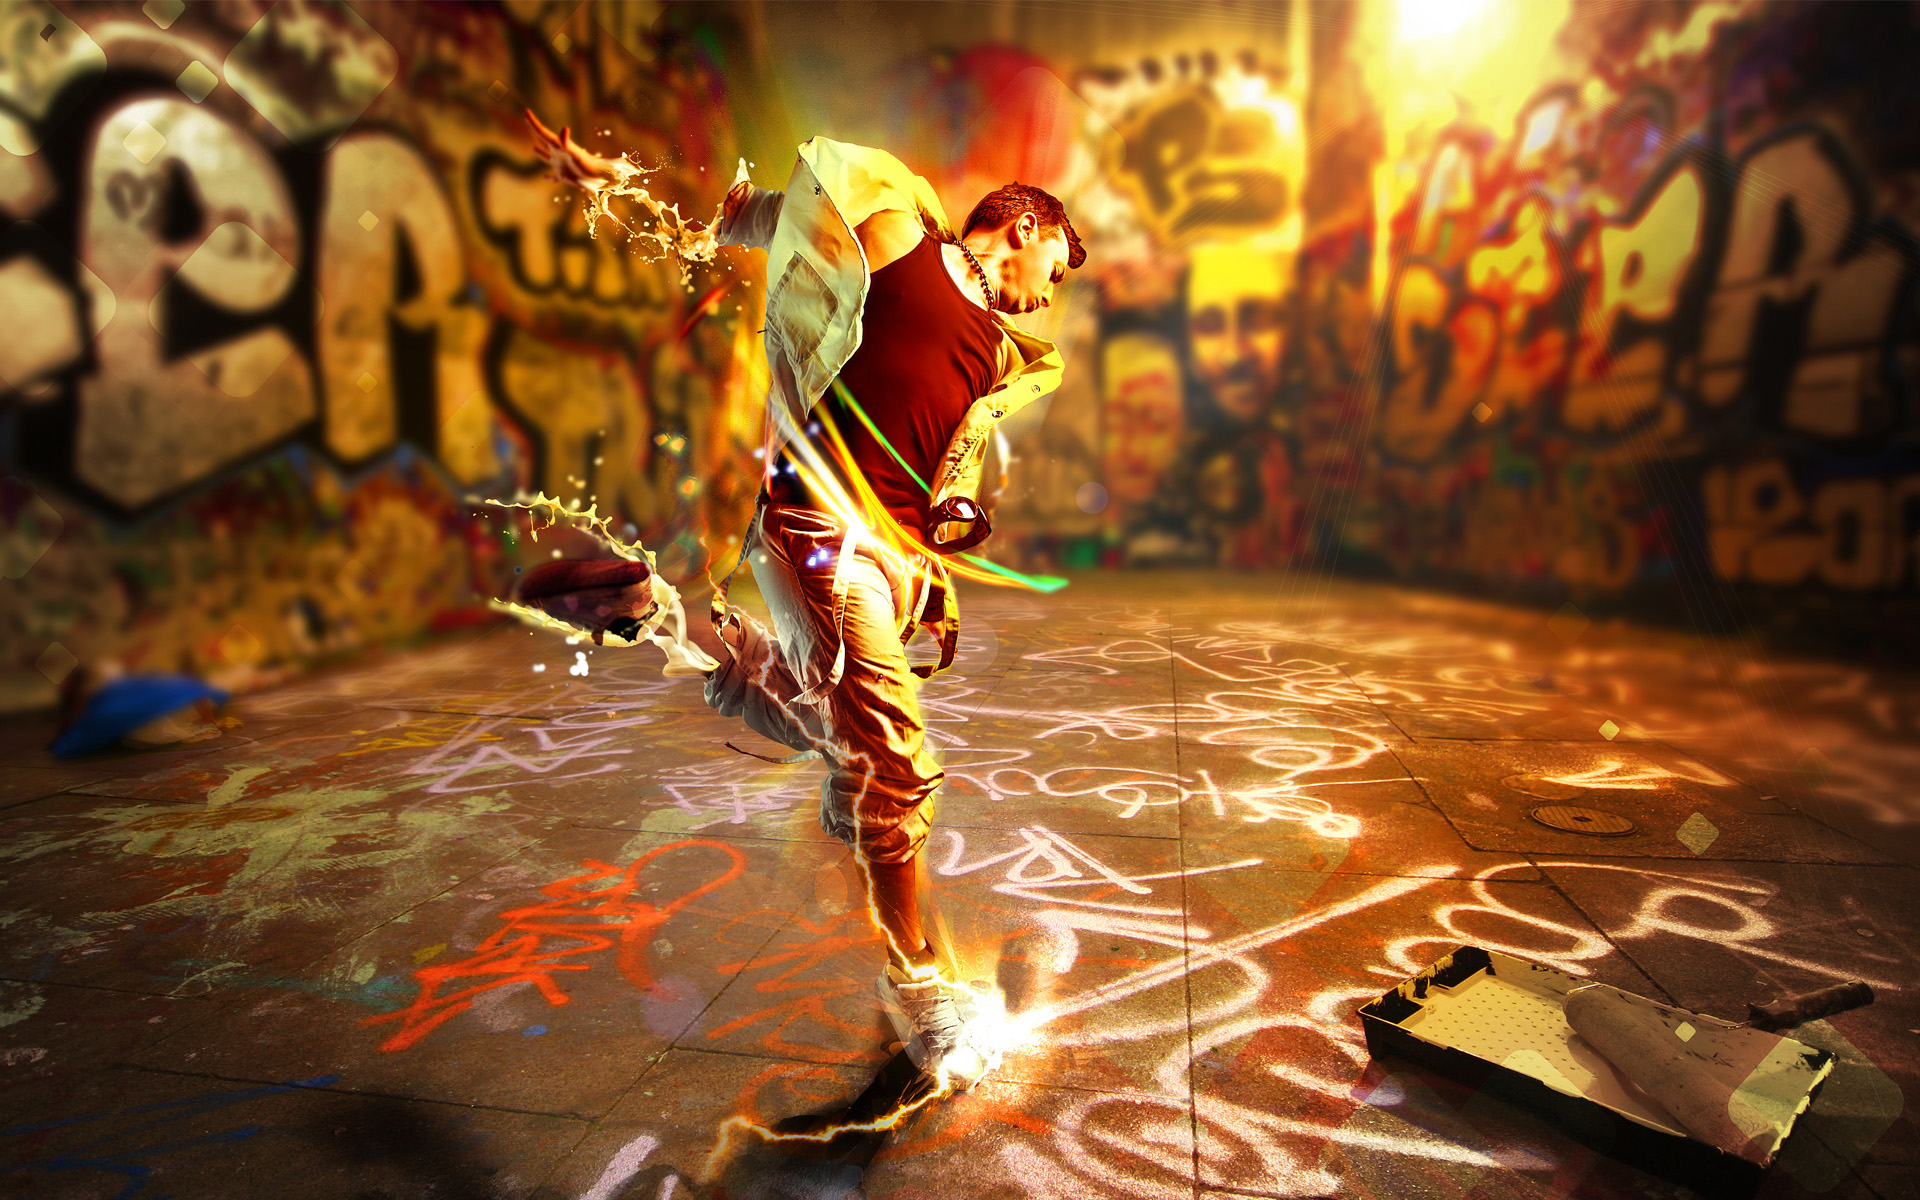 Wonderful Wallpaper Music Graffiti Art - Resident-Evil-Dance-Graffiti-Art-rahulsmusic-38762803-1920-1200  Trends_255698.jpg